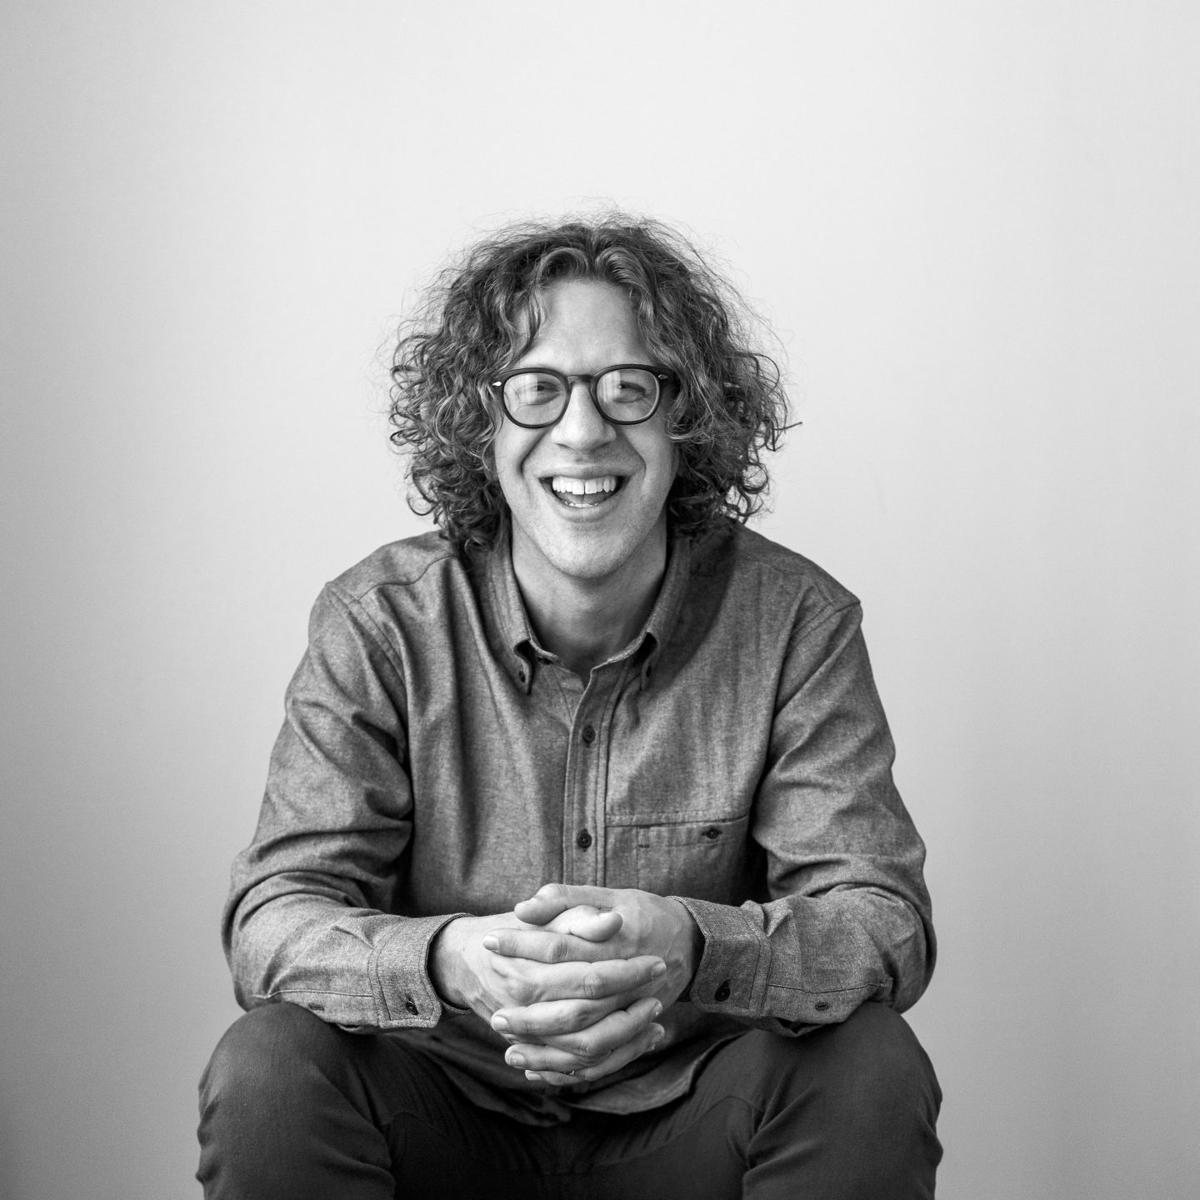 051919_con_Phil Cook Primary by Josh Wool_bw